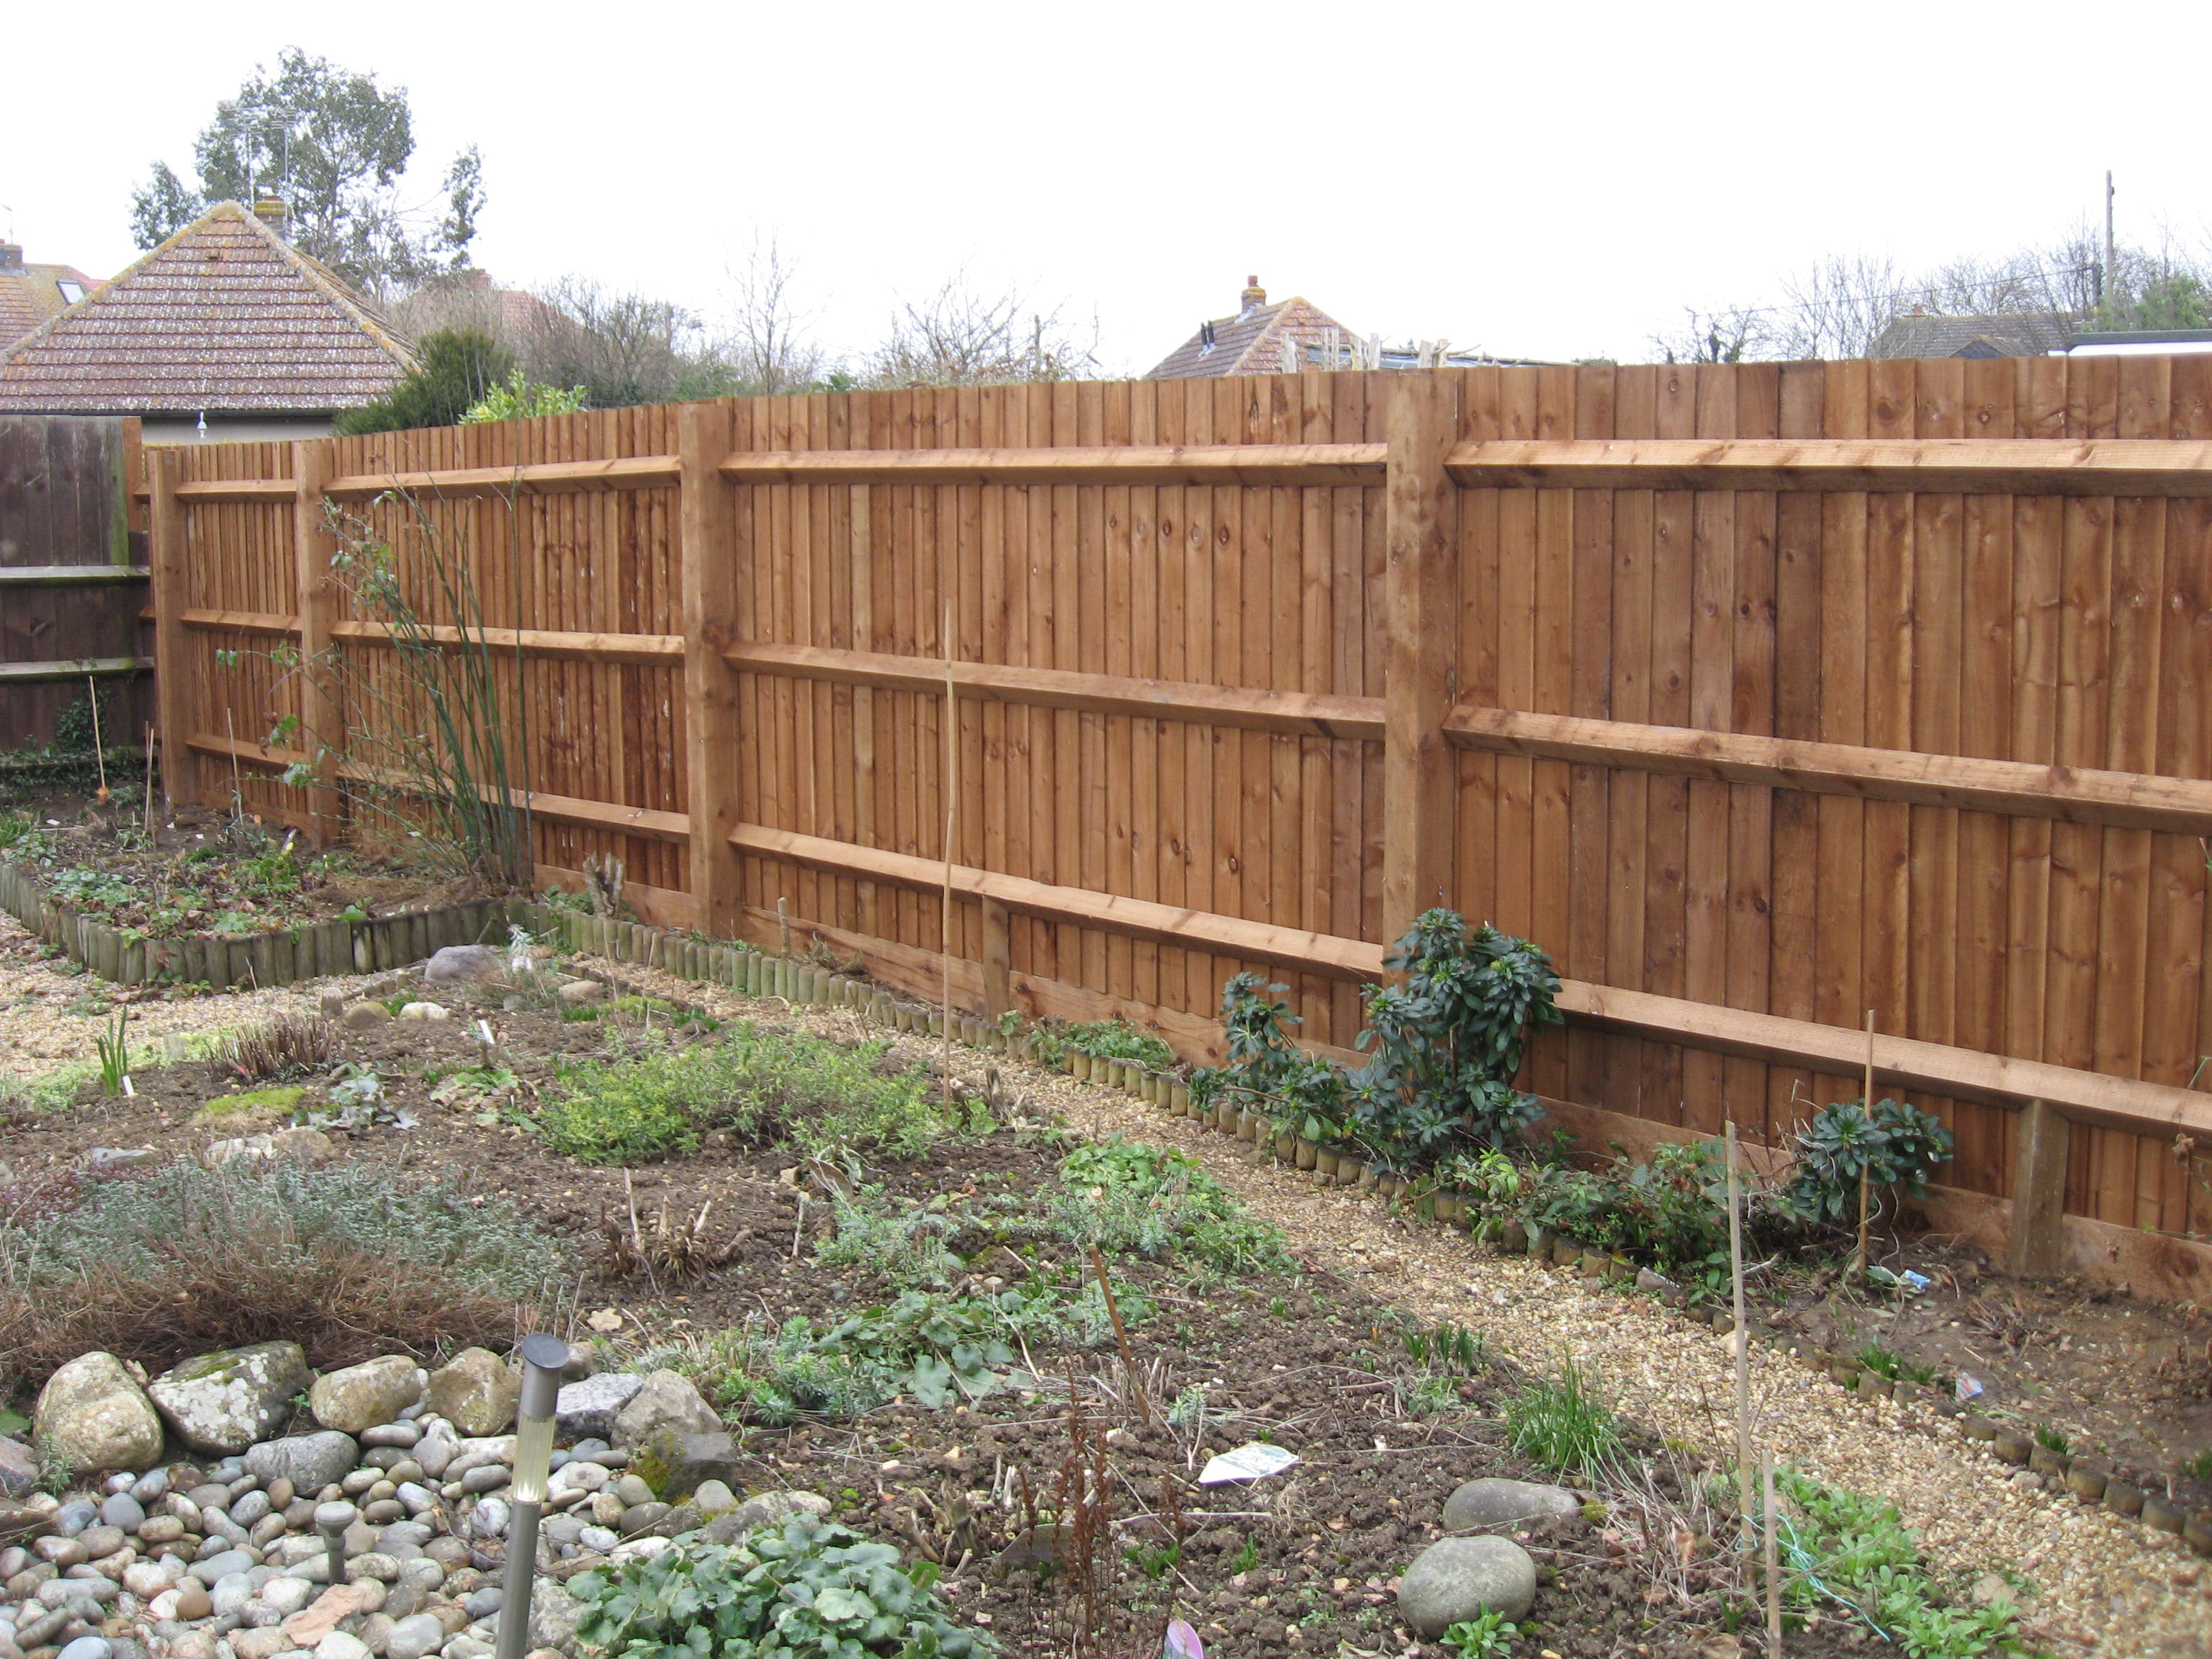 fence quotation sample. closeboard fencing with arris rails and notched posts fence quotation sample